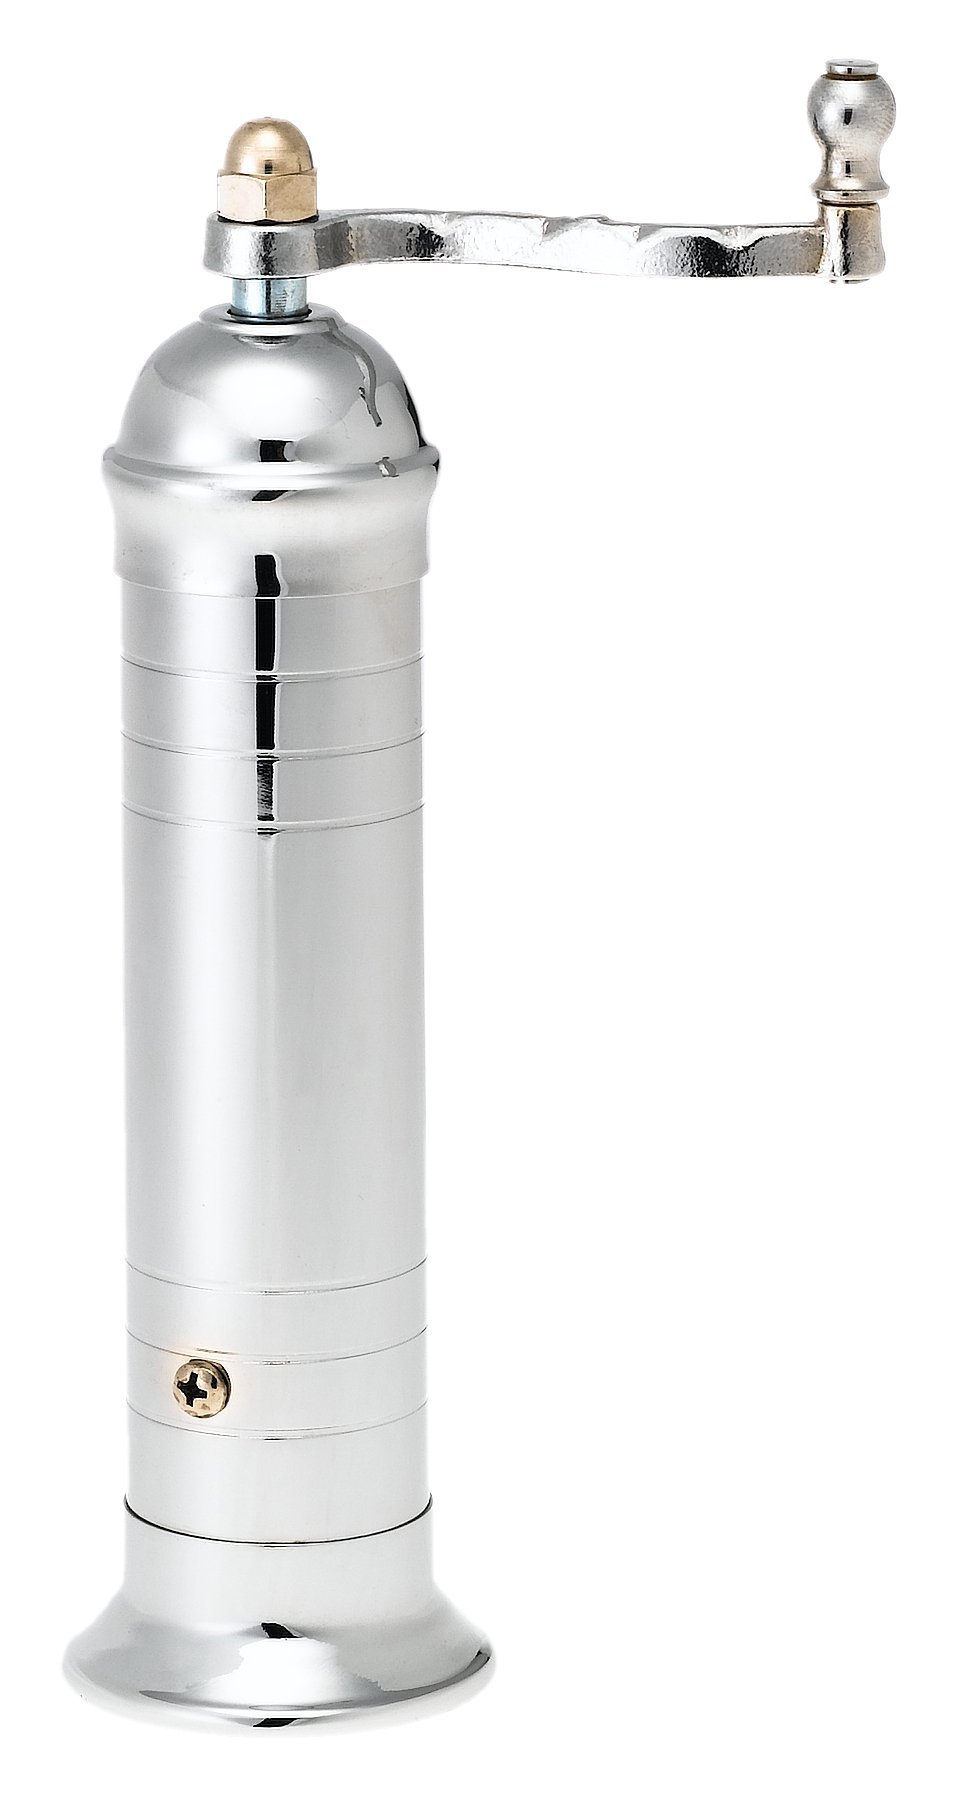 Pepper Mill Imports Atlas Pepper Mill, Chrome, 8'' by Pepper Mill Imports